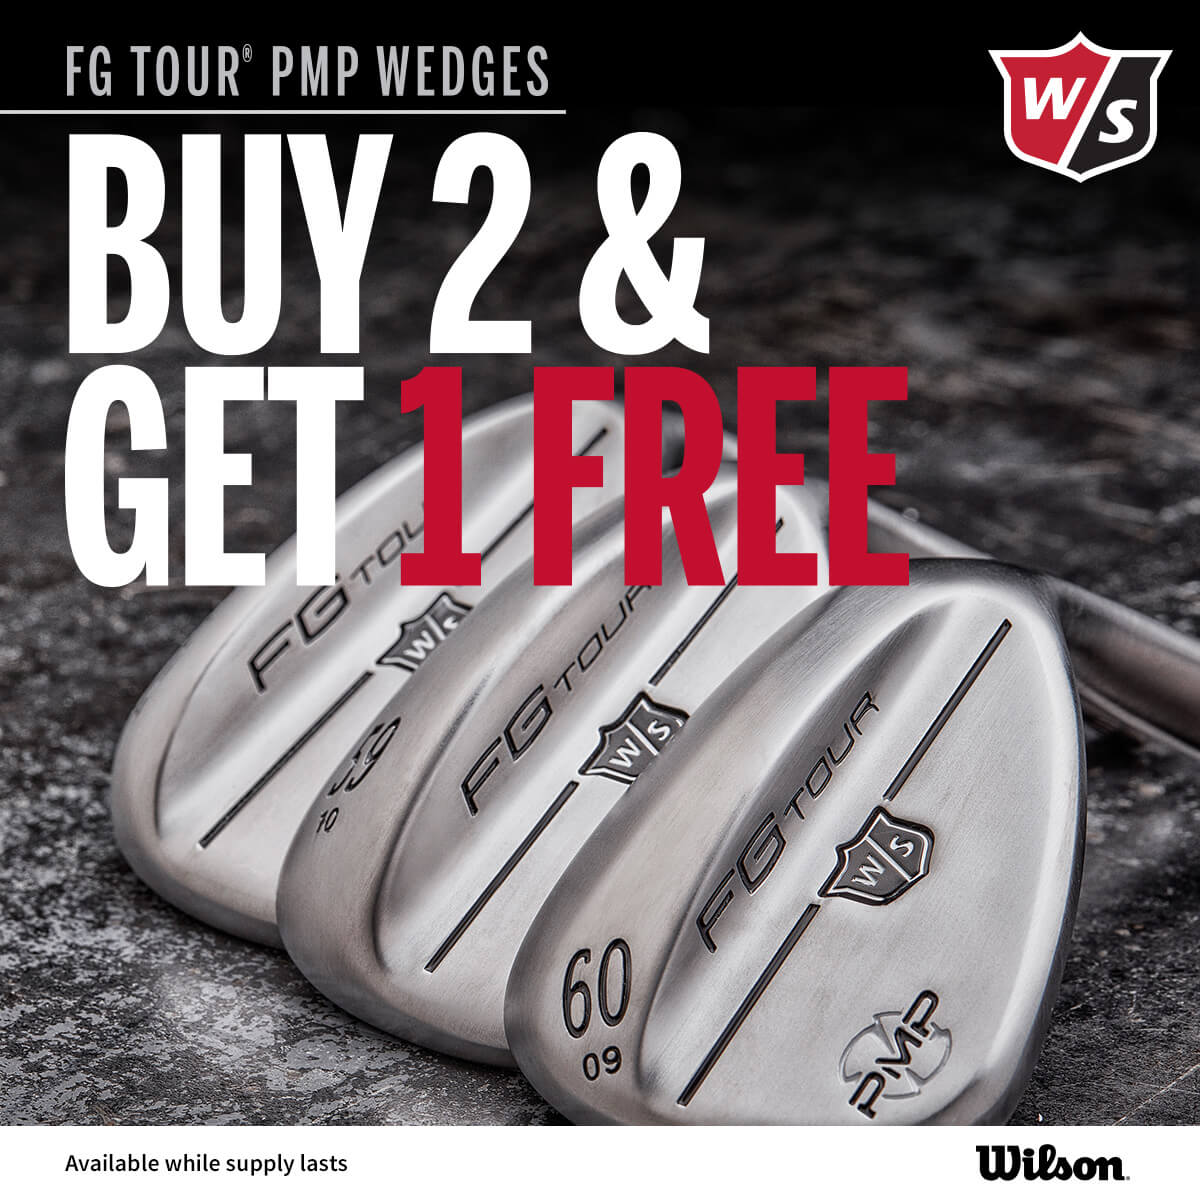 Wilson PMP Wedges Buy 2 Get 1 Free